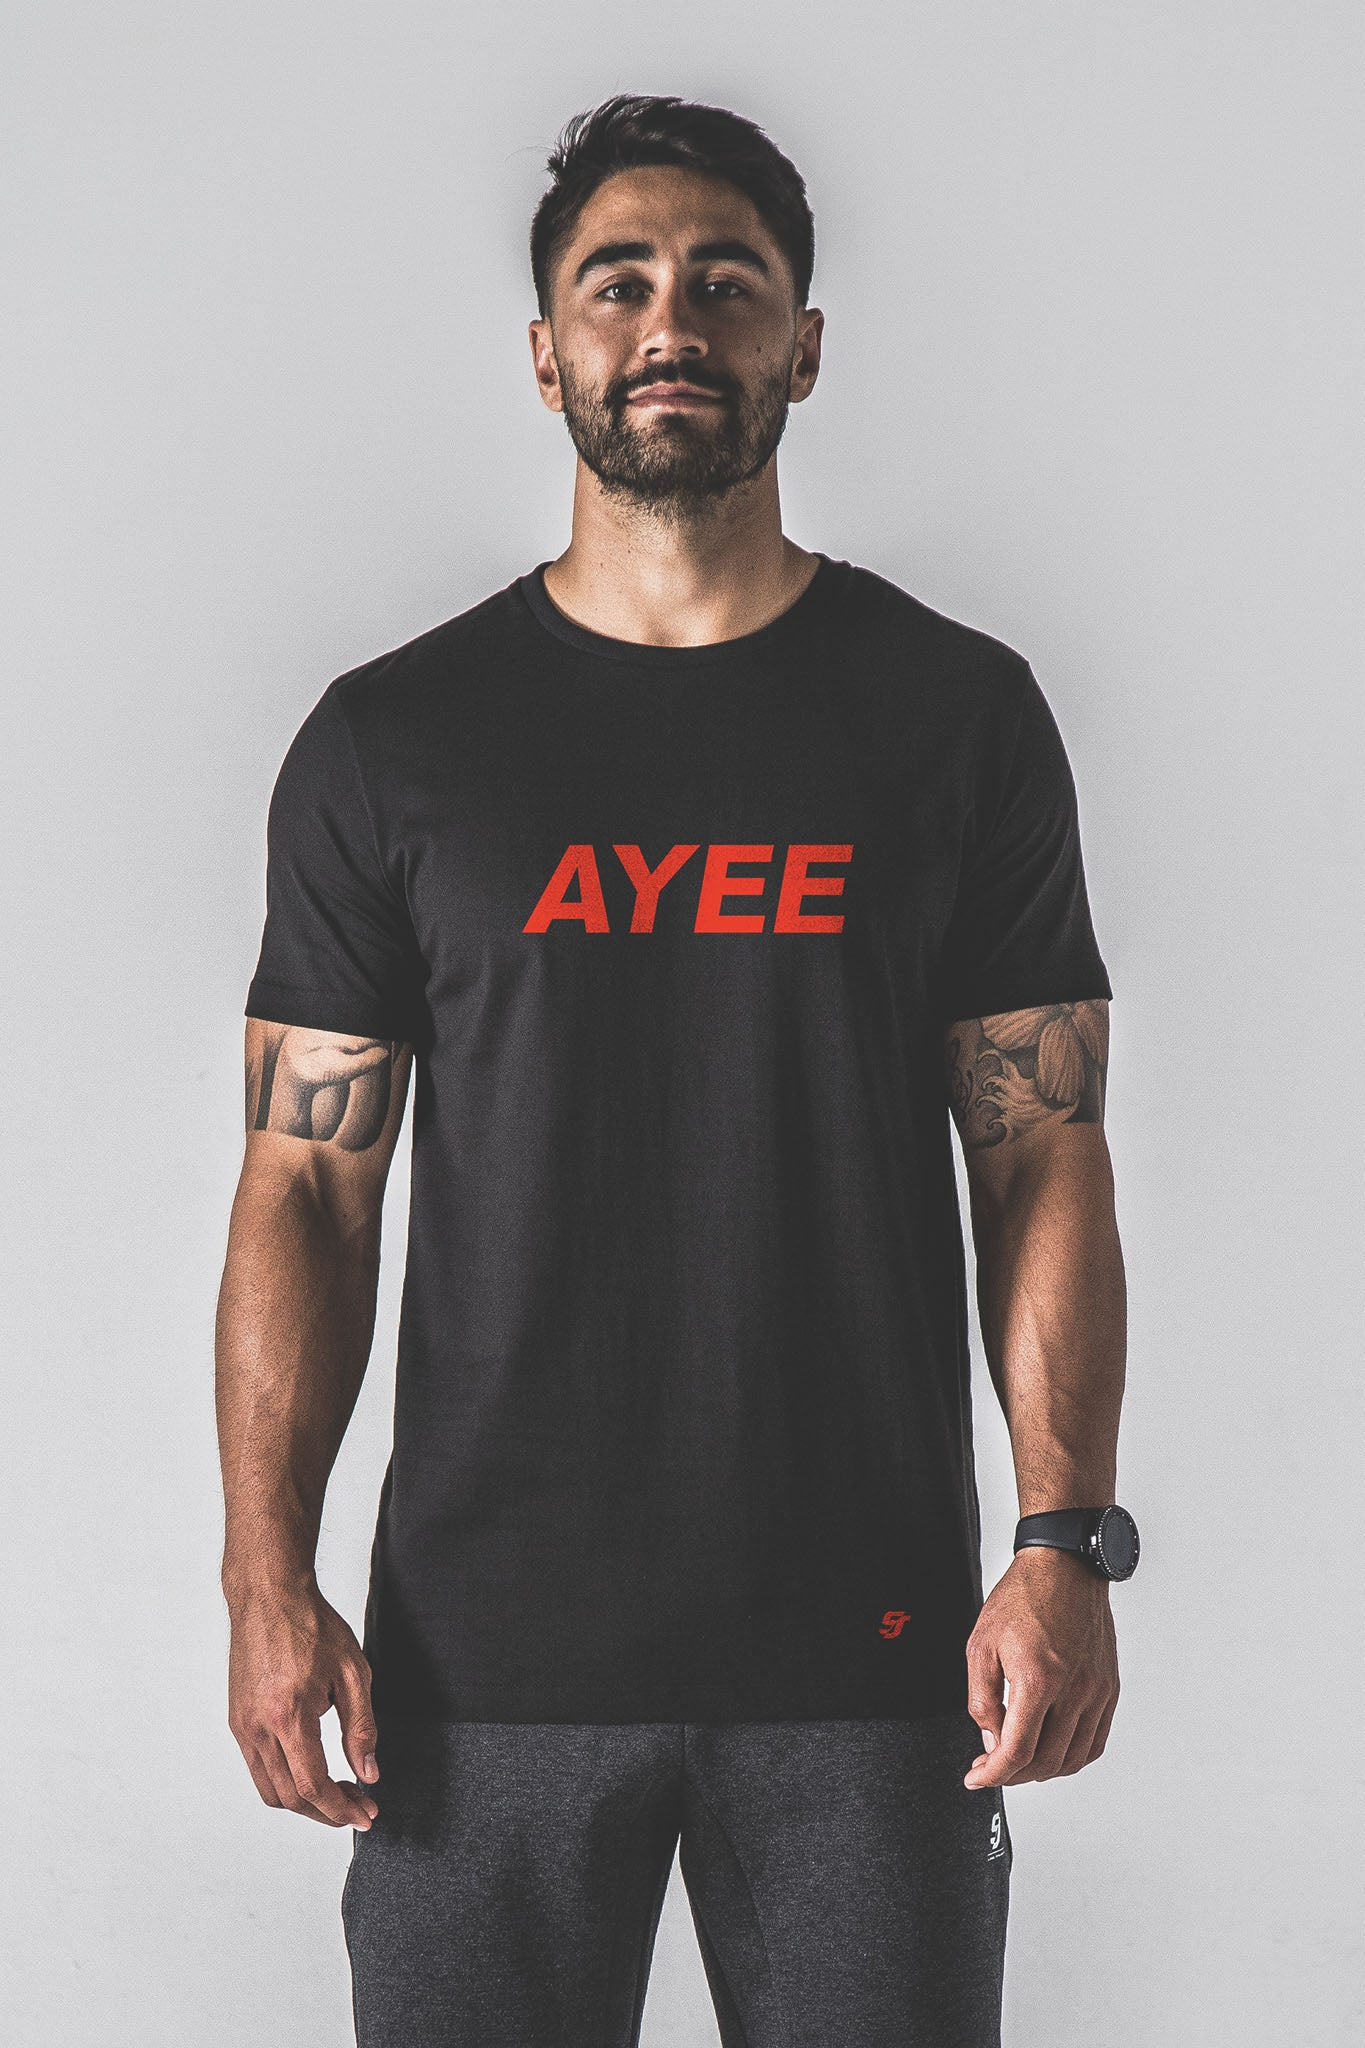 SJ Ayee Tee - Black / Red